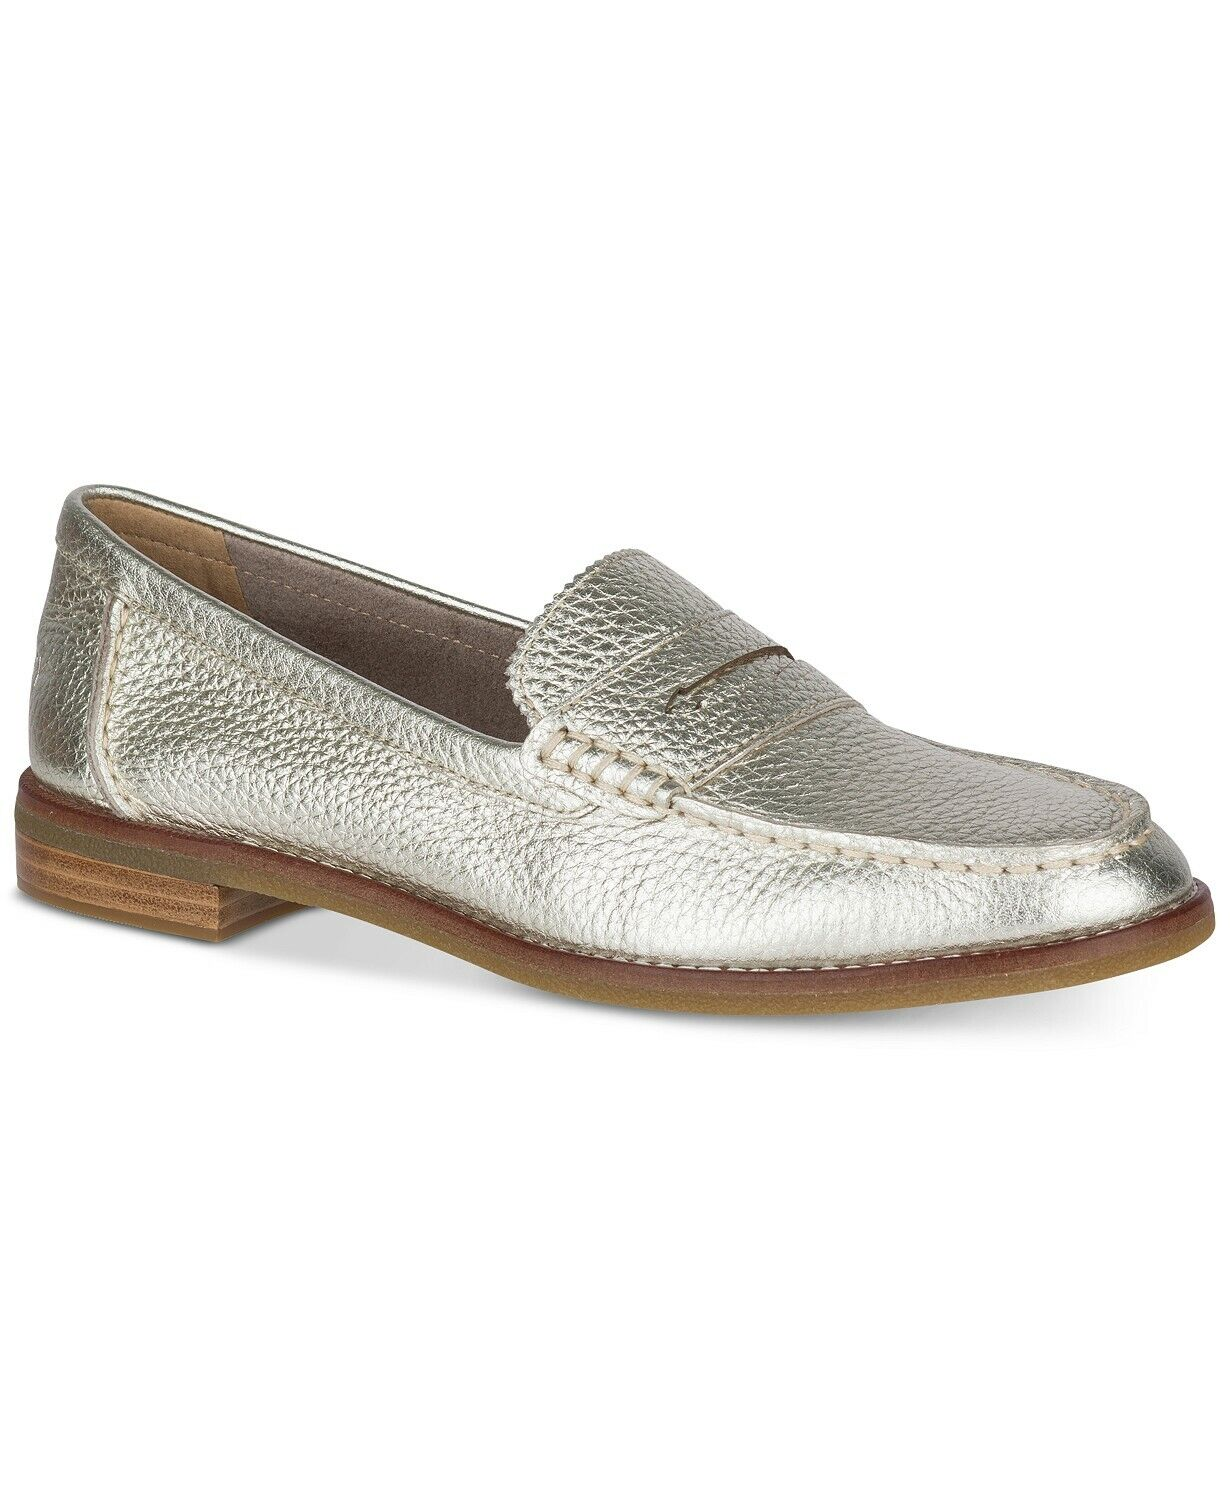 Sperry Women's Seaport Penny Memory Foam Loafers Platinum